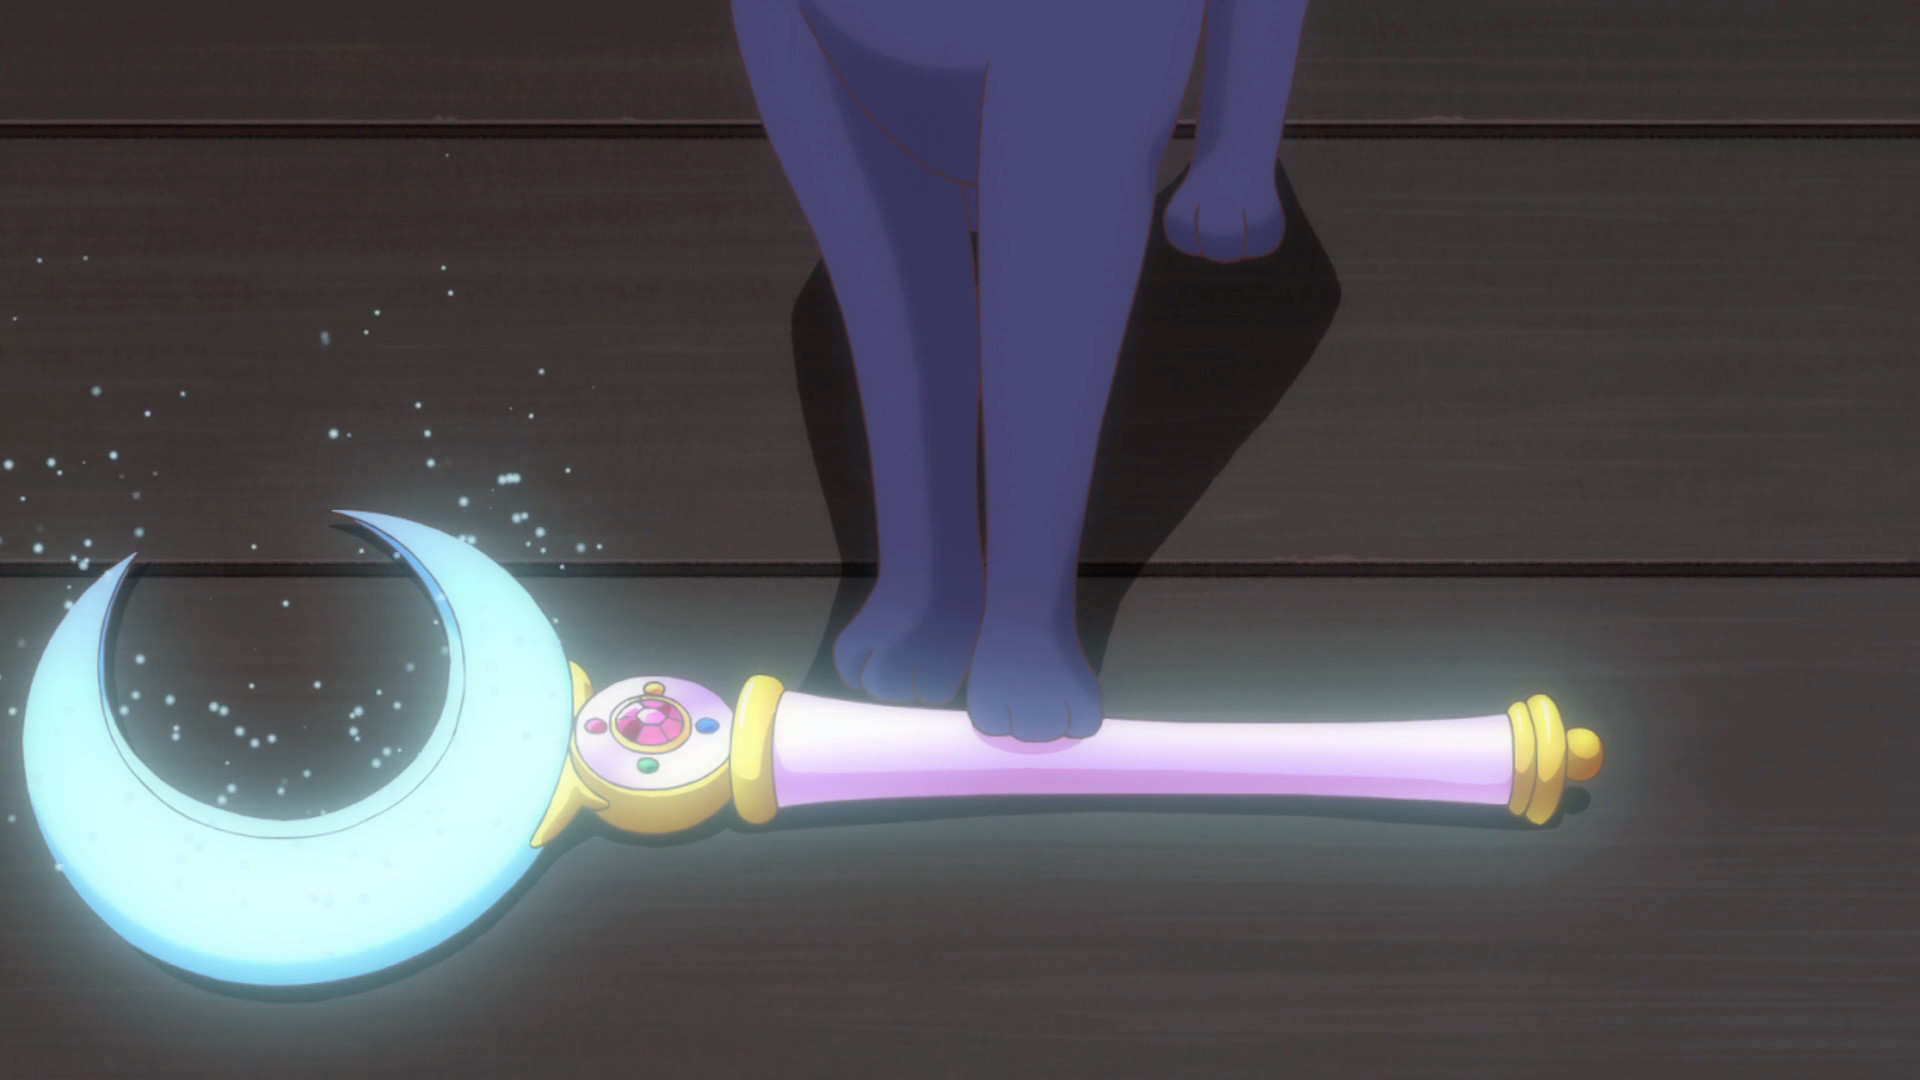 screenshot from sailor moon crystal where Luna presents the moon stick with a glowing moon stick with crystal crescent moon